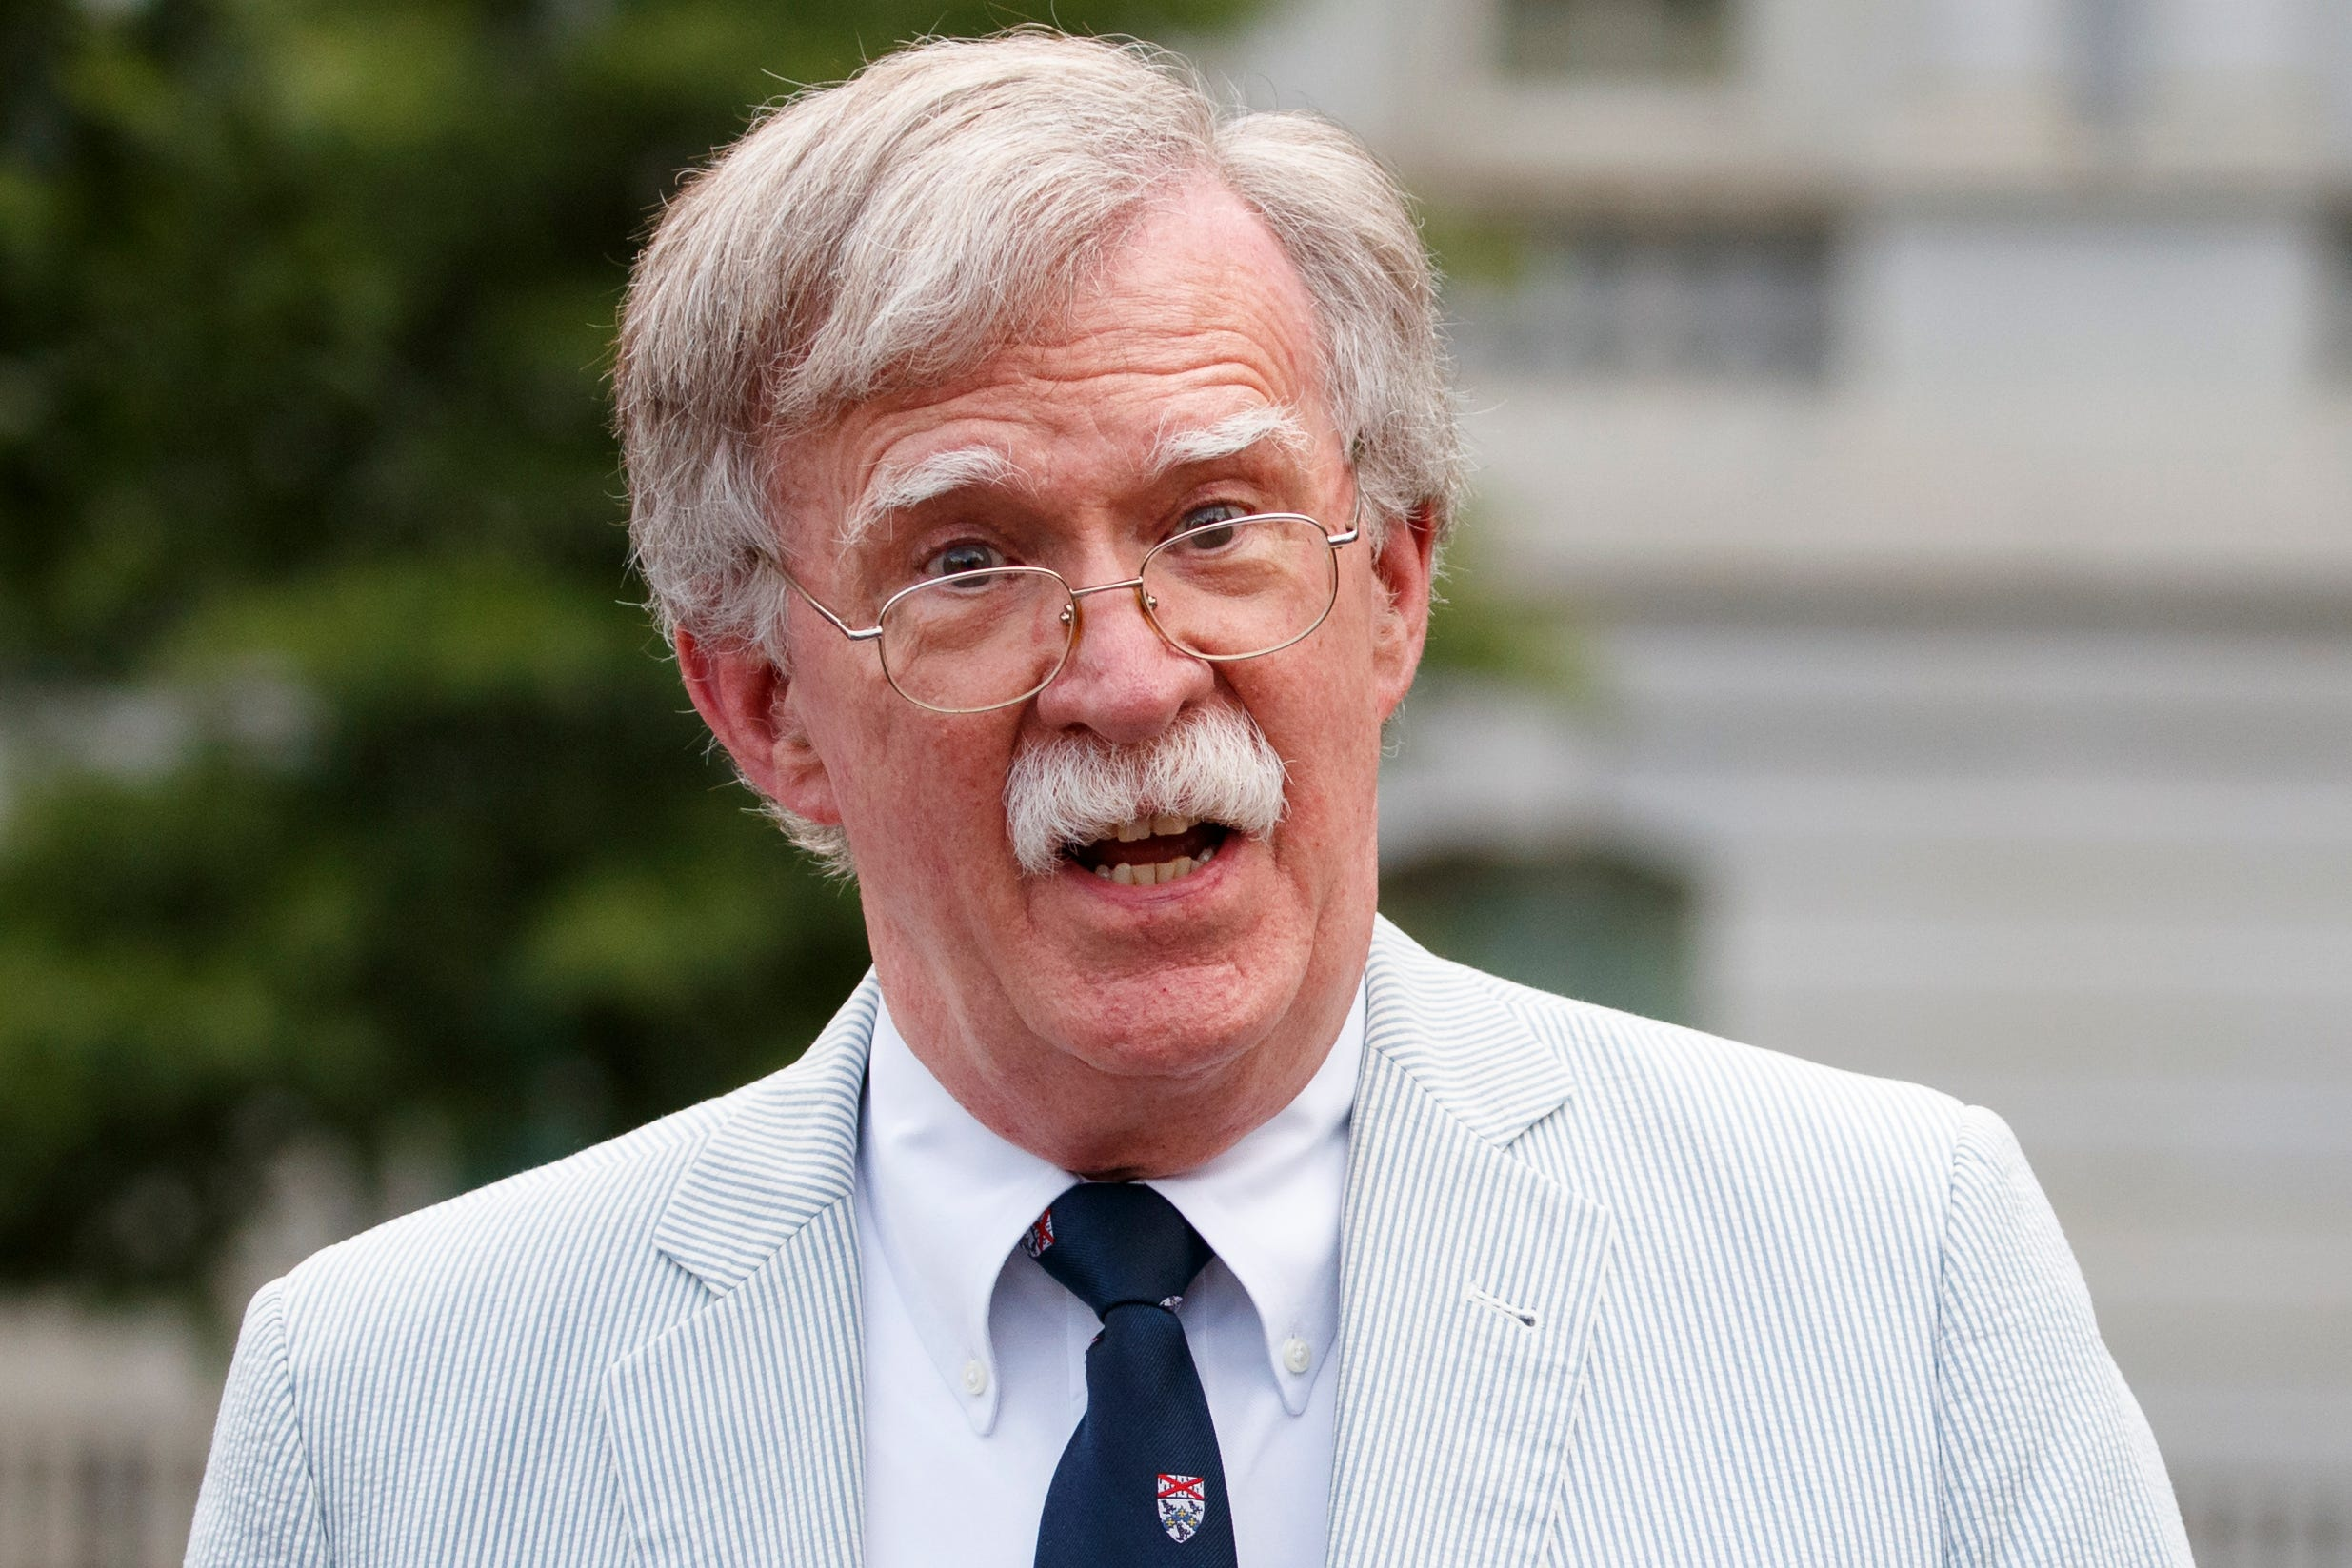 Who is John Bolton, the former national security adviser now a focus in Trump's impeachment trial?